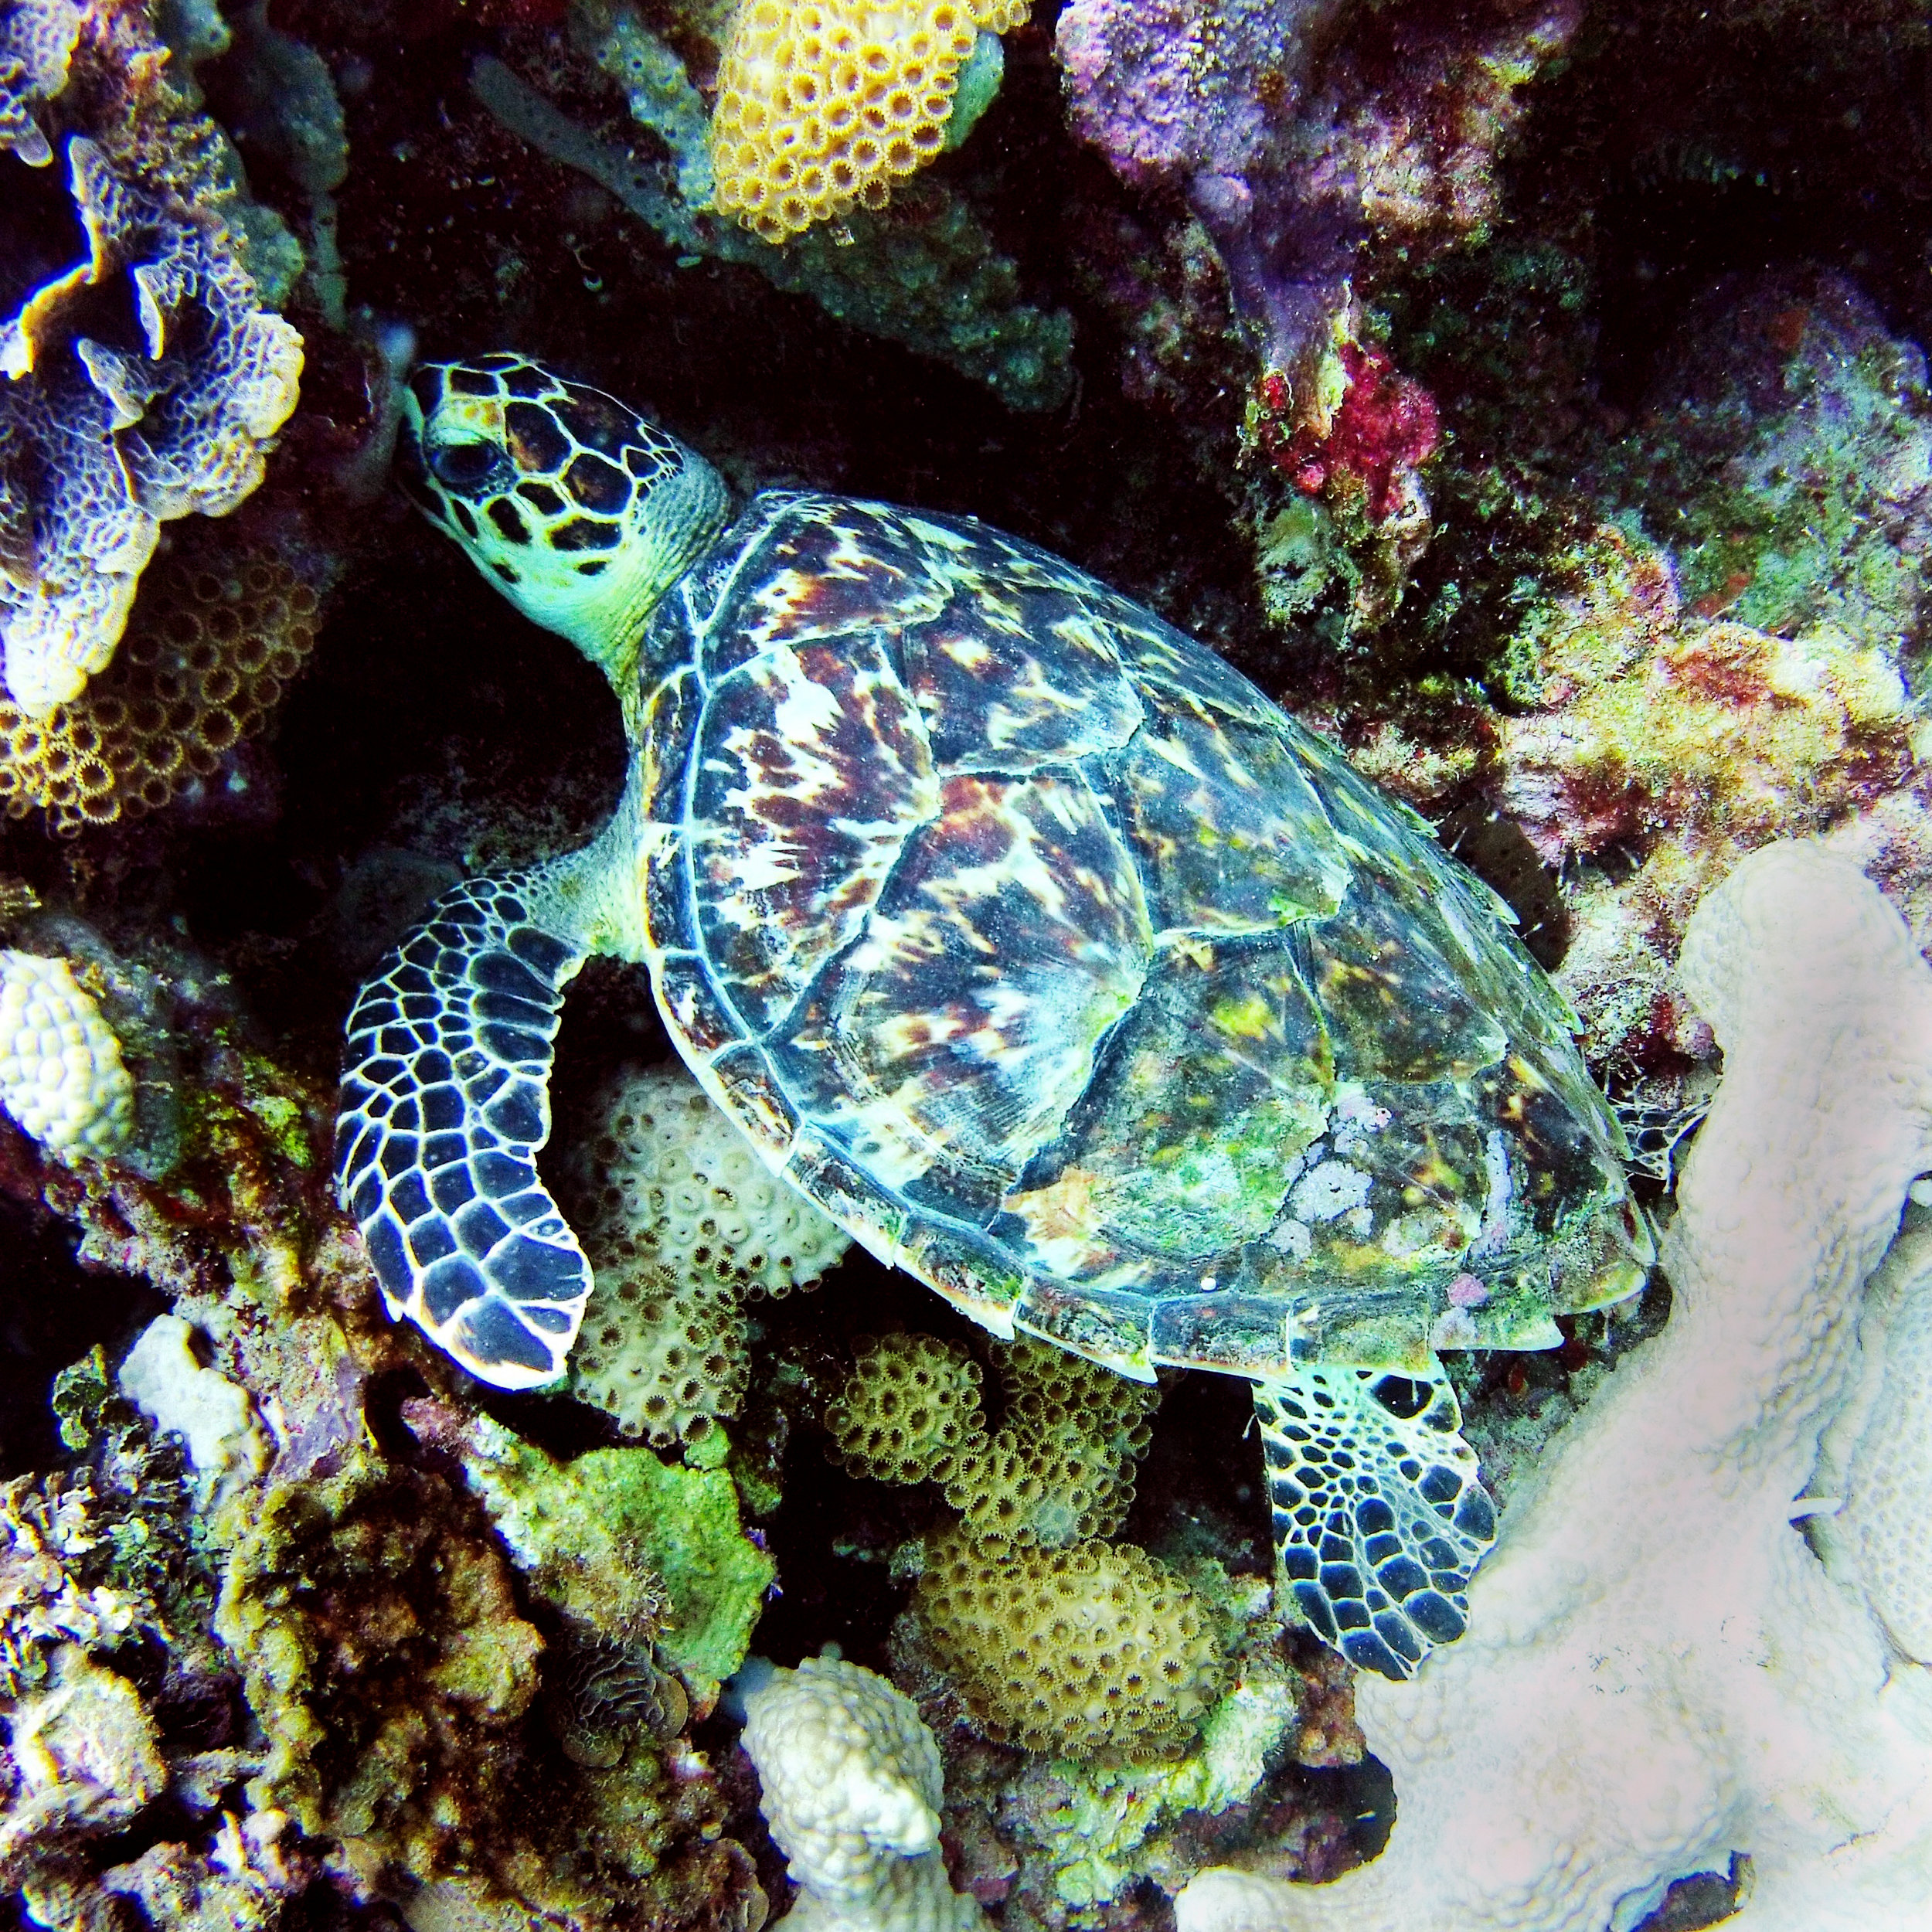 A young hawksbill sea turtle ( Eretmochelys imbricata ) rests on the reef.